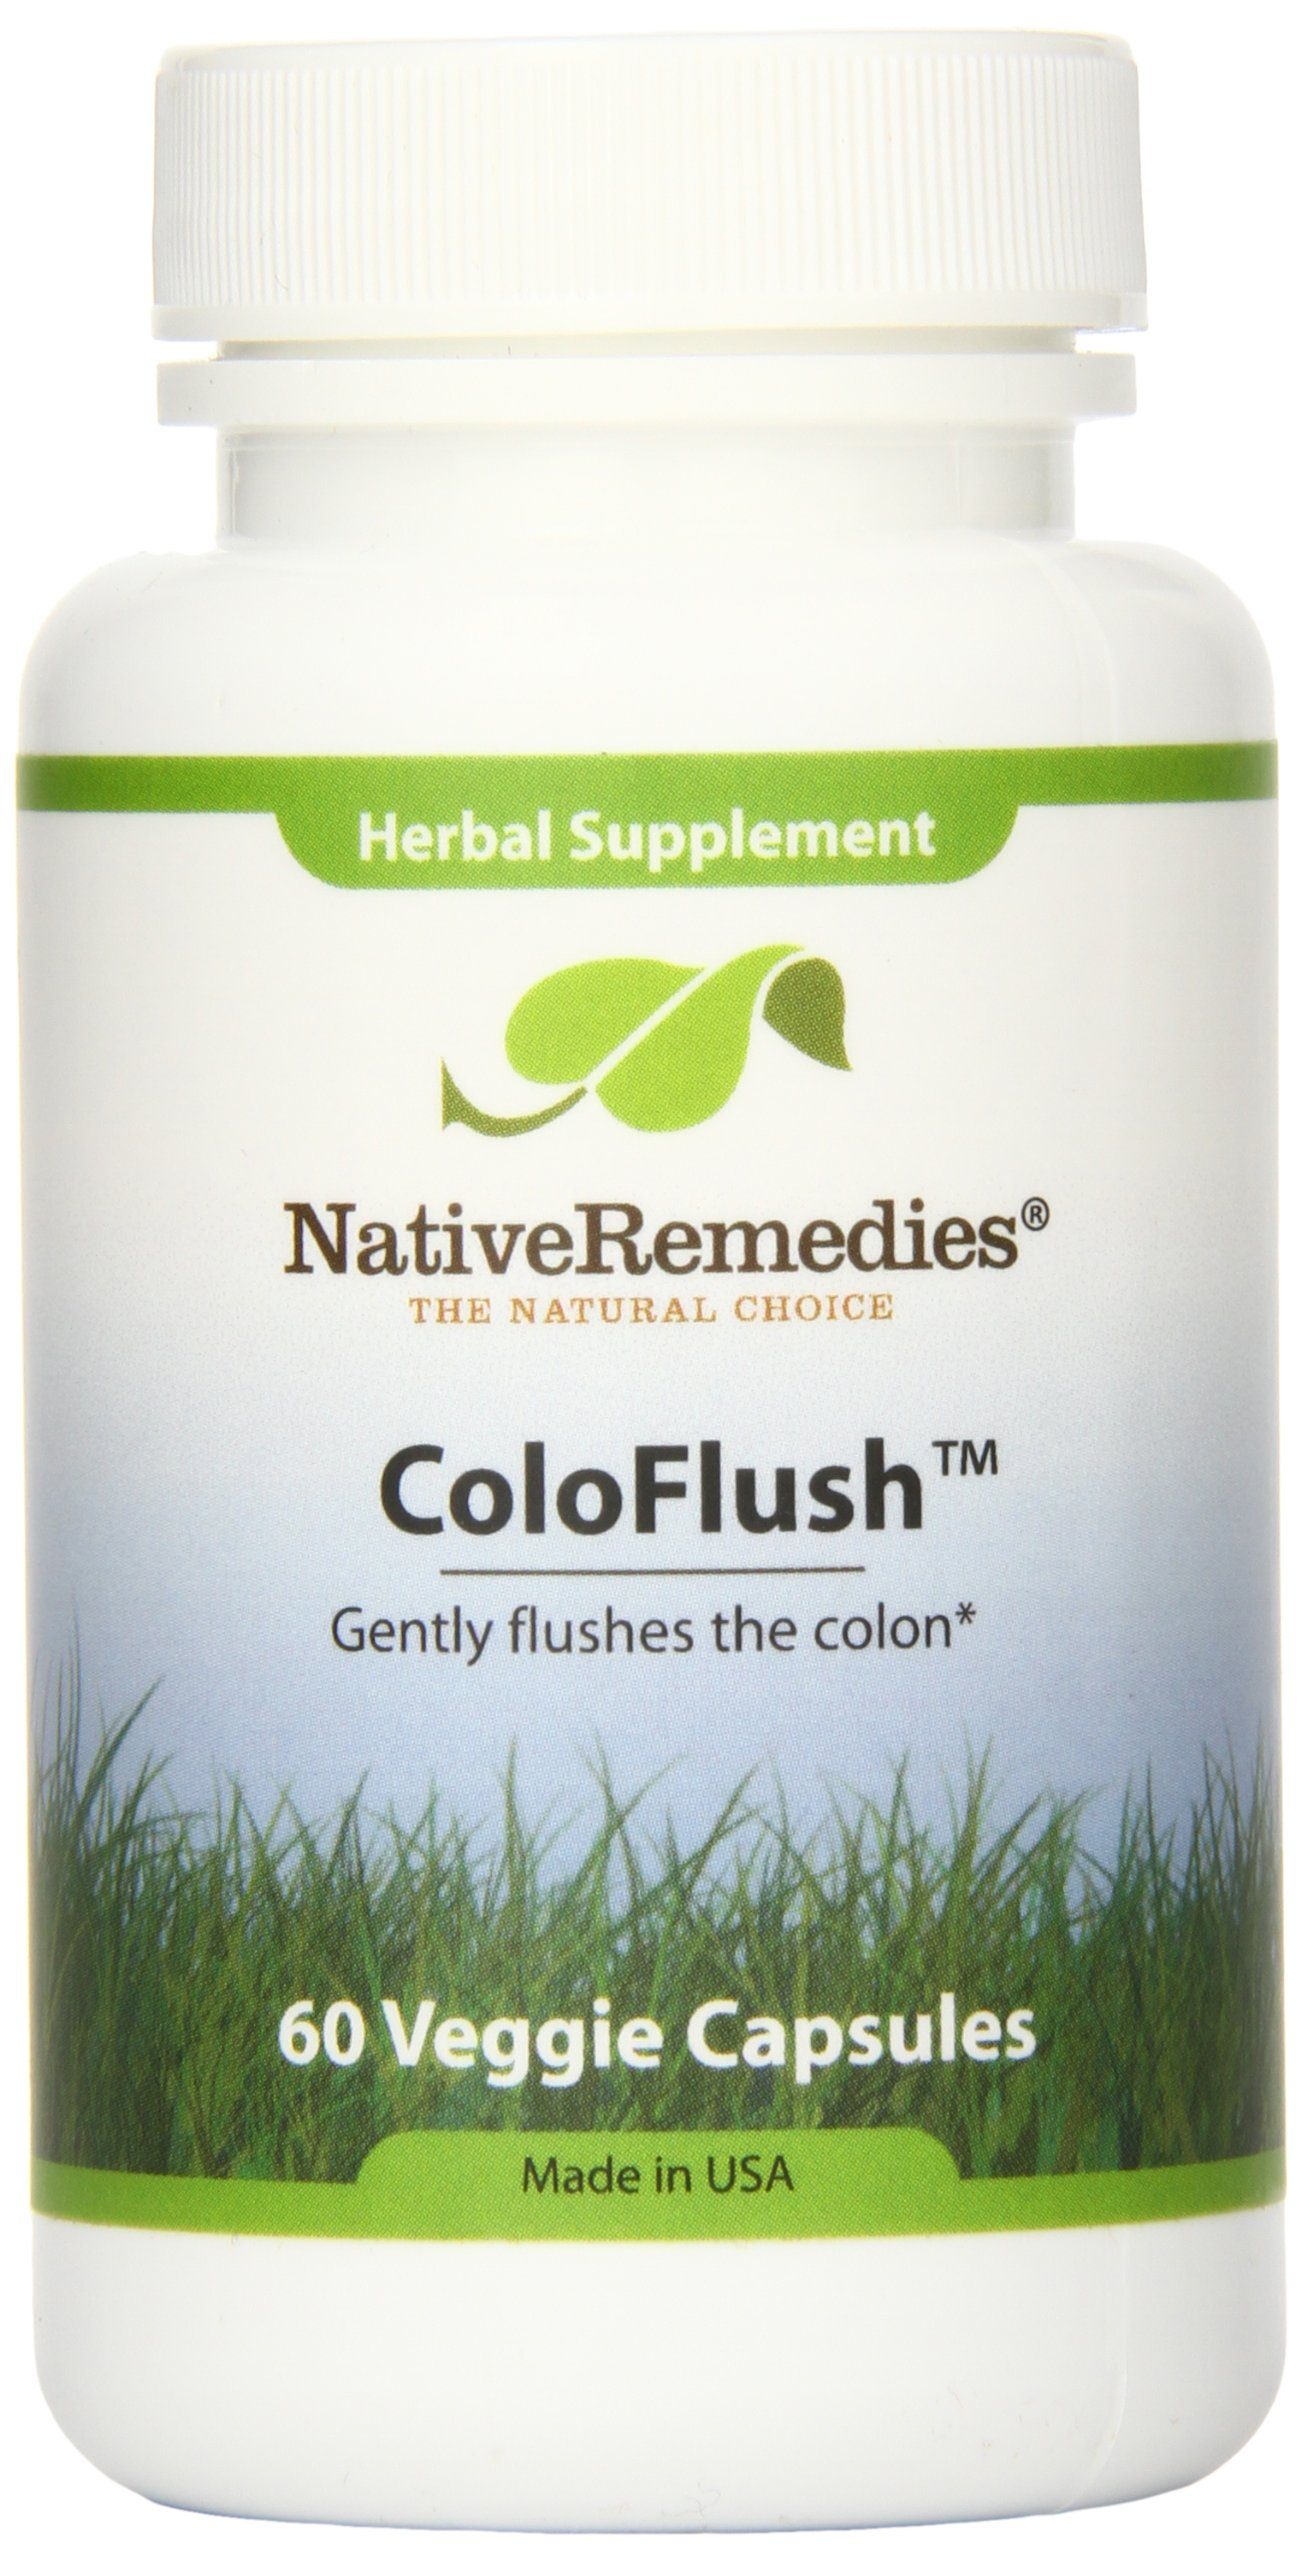 Native Remedies Coloflush Herbal Supplement Capsules, 1.78 Ounce